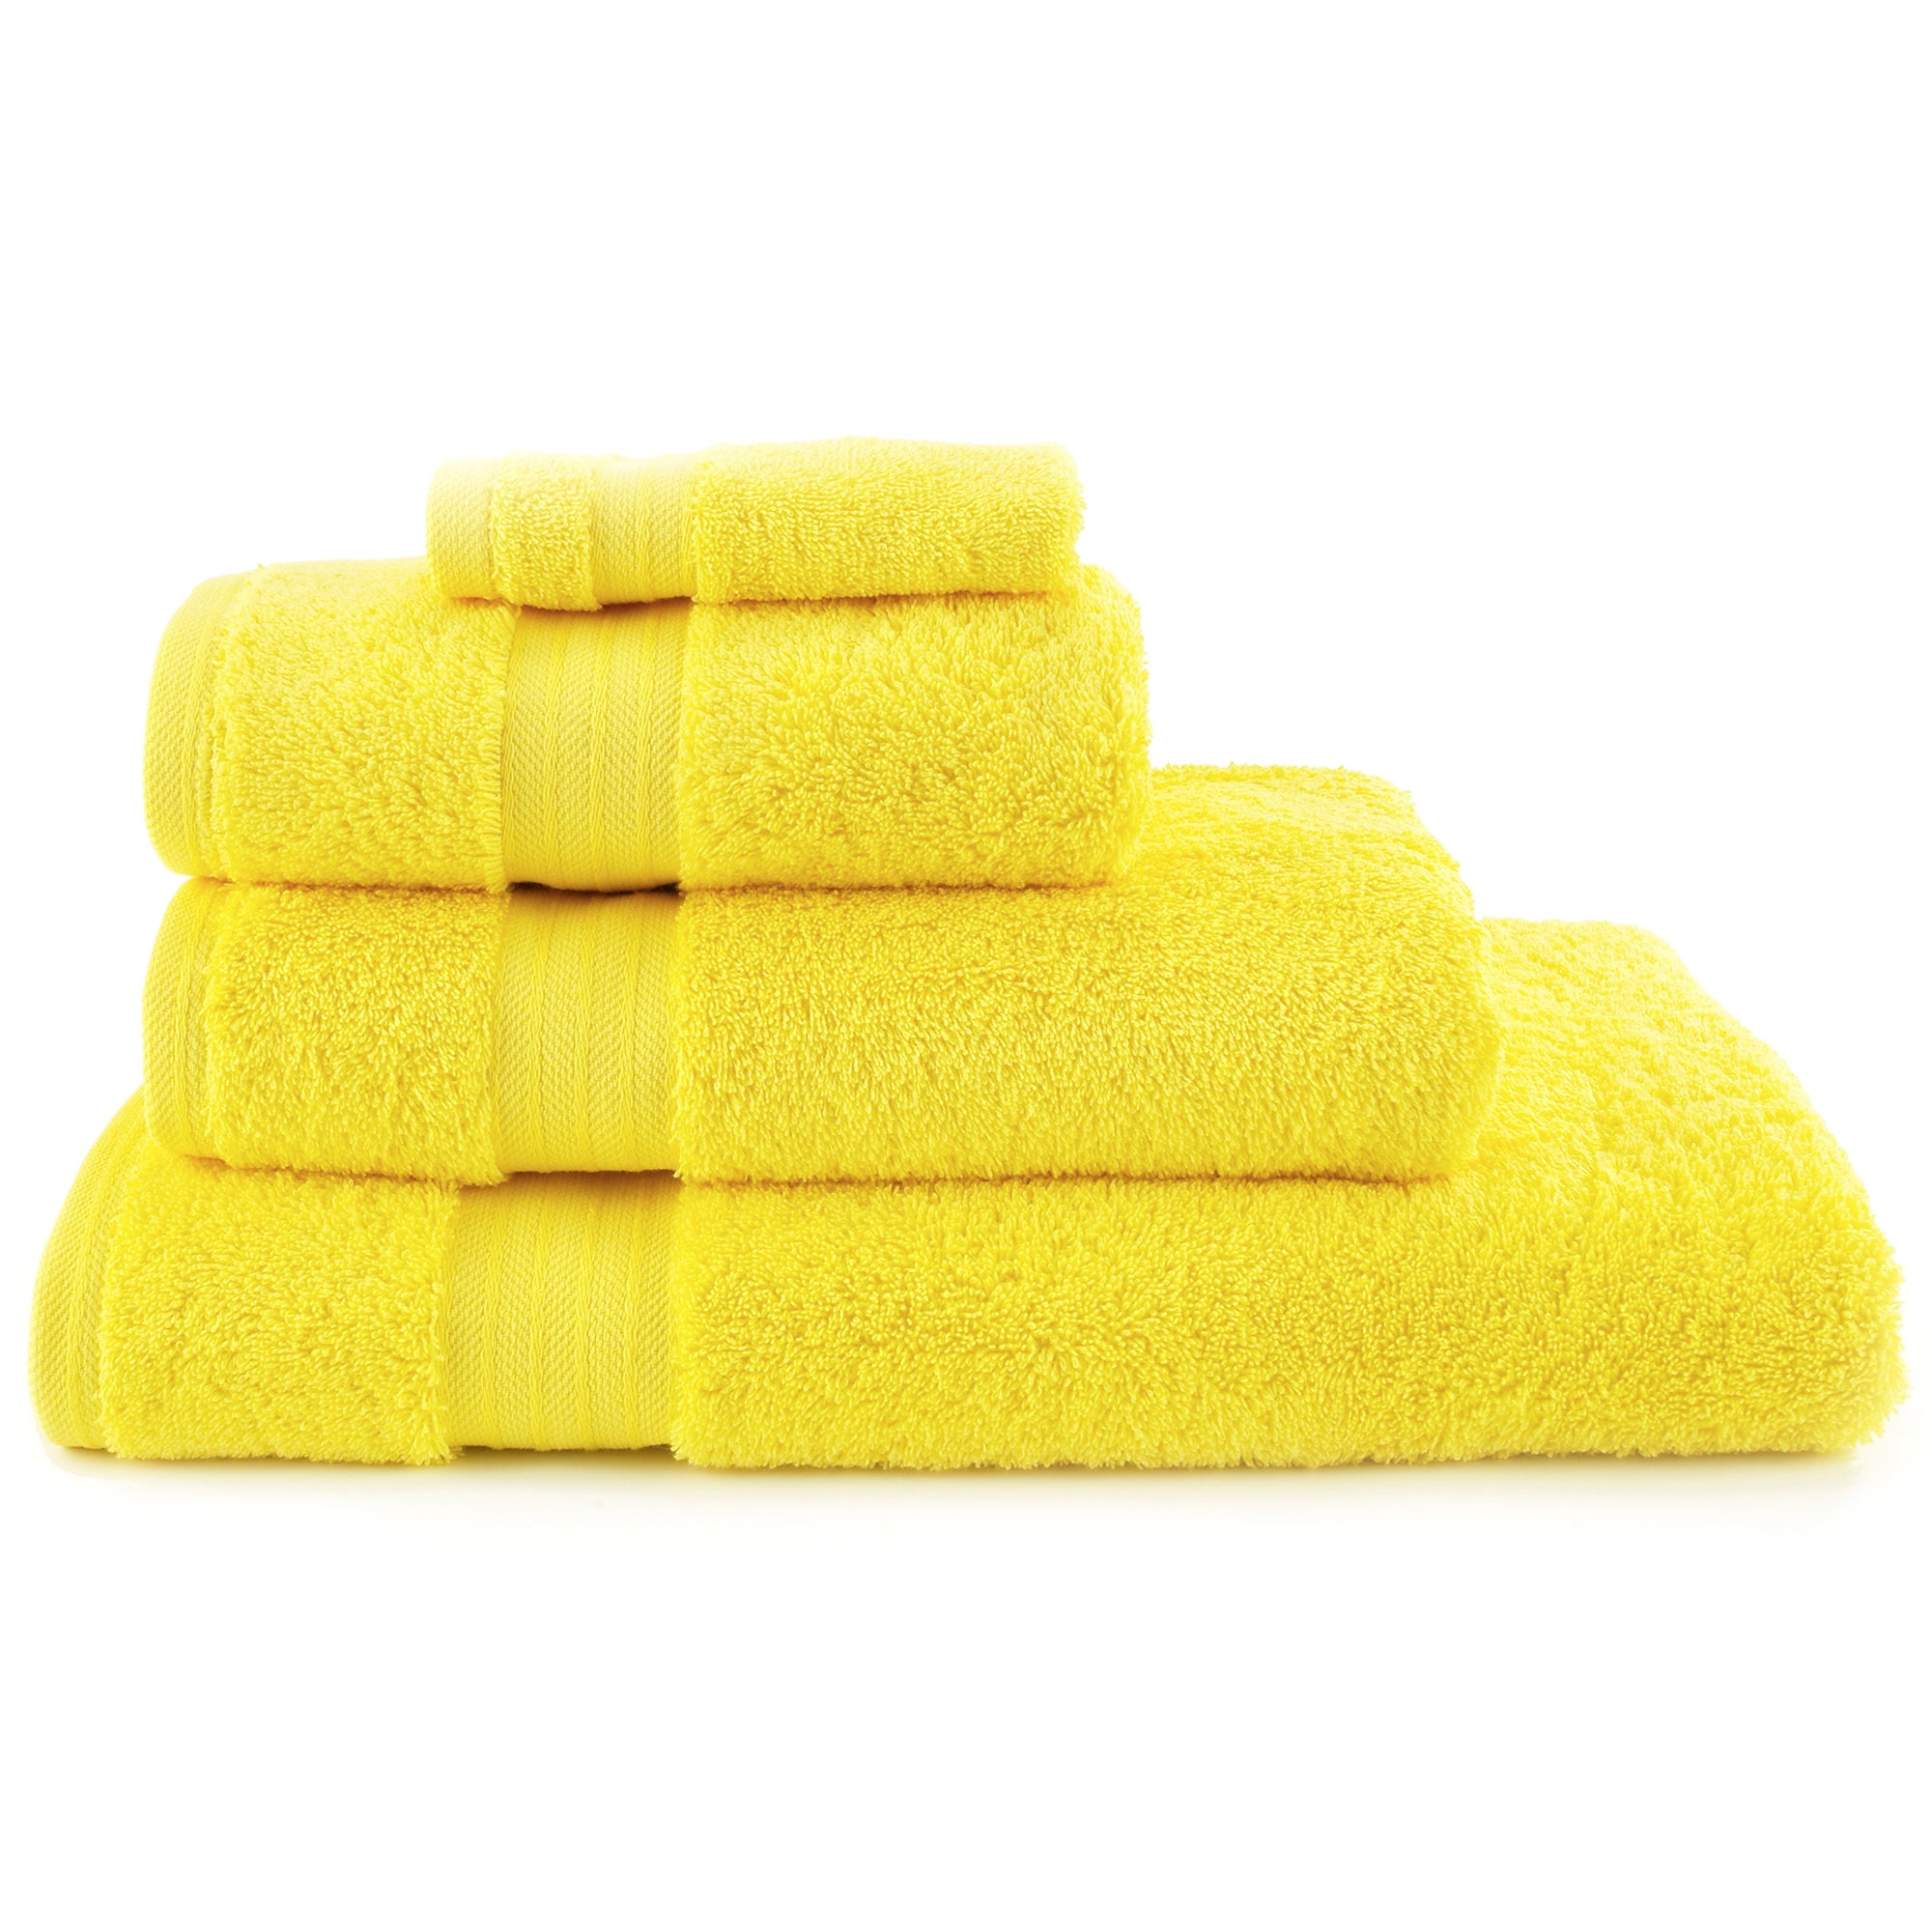 Canary 100% Egyptian Cotton Towels